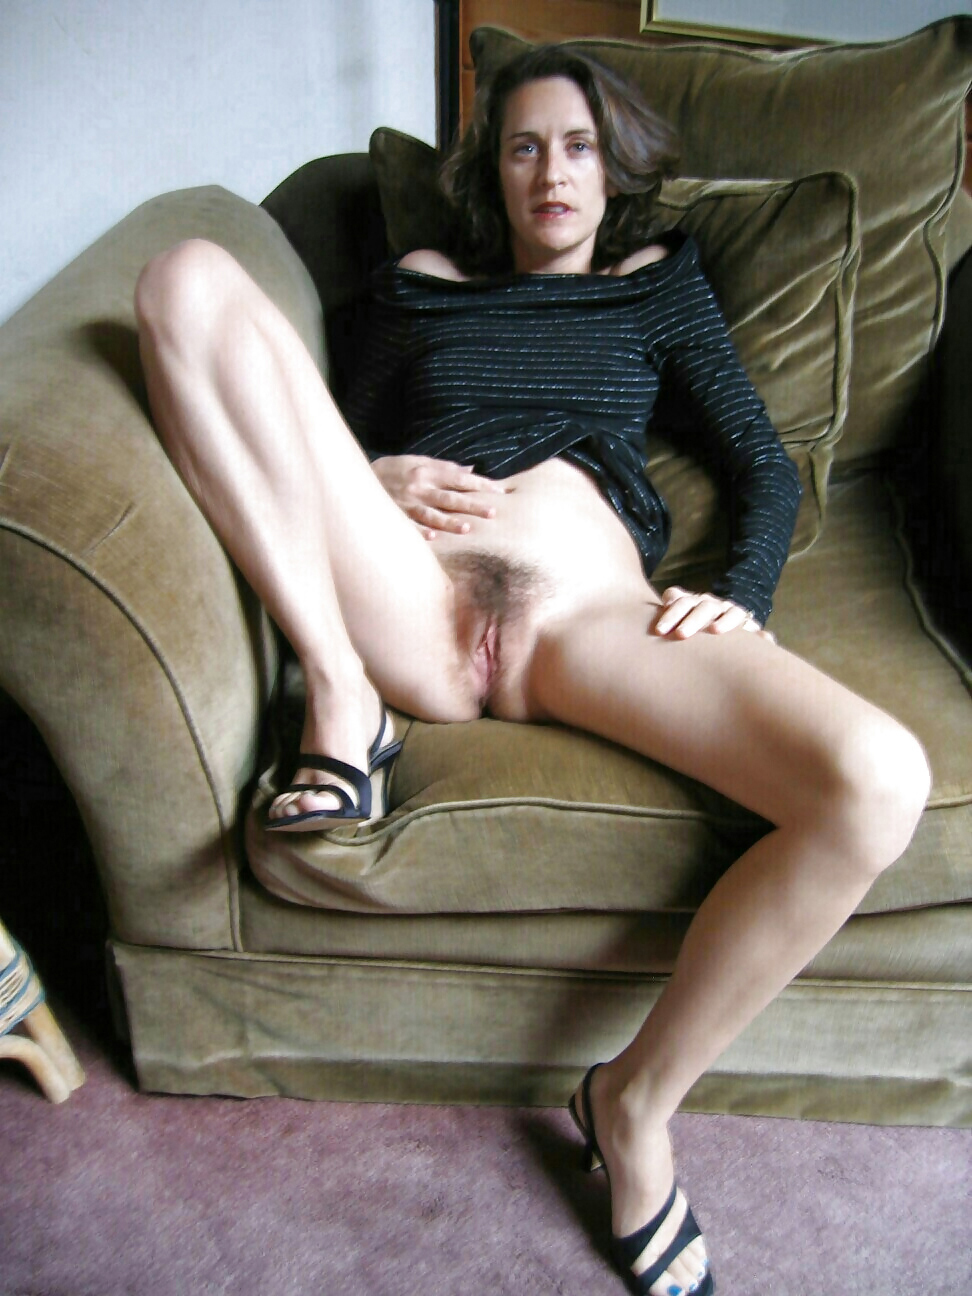 gradual house fit together porn galleries